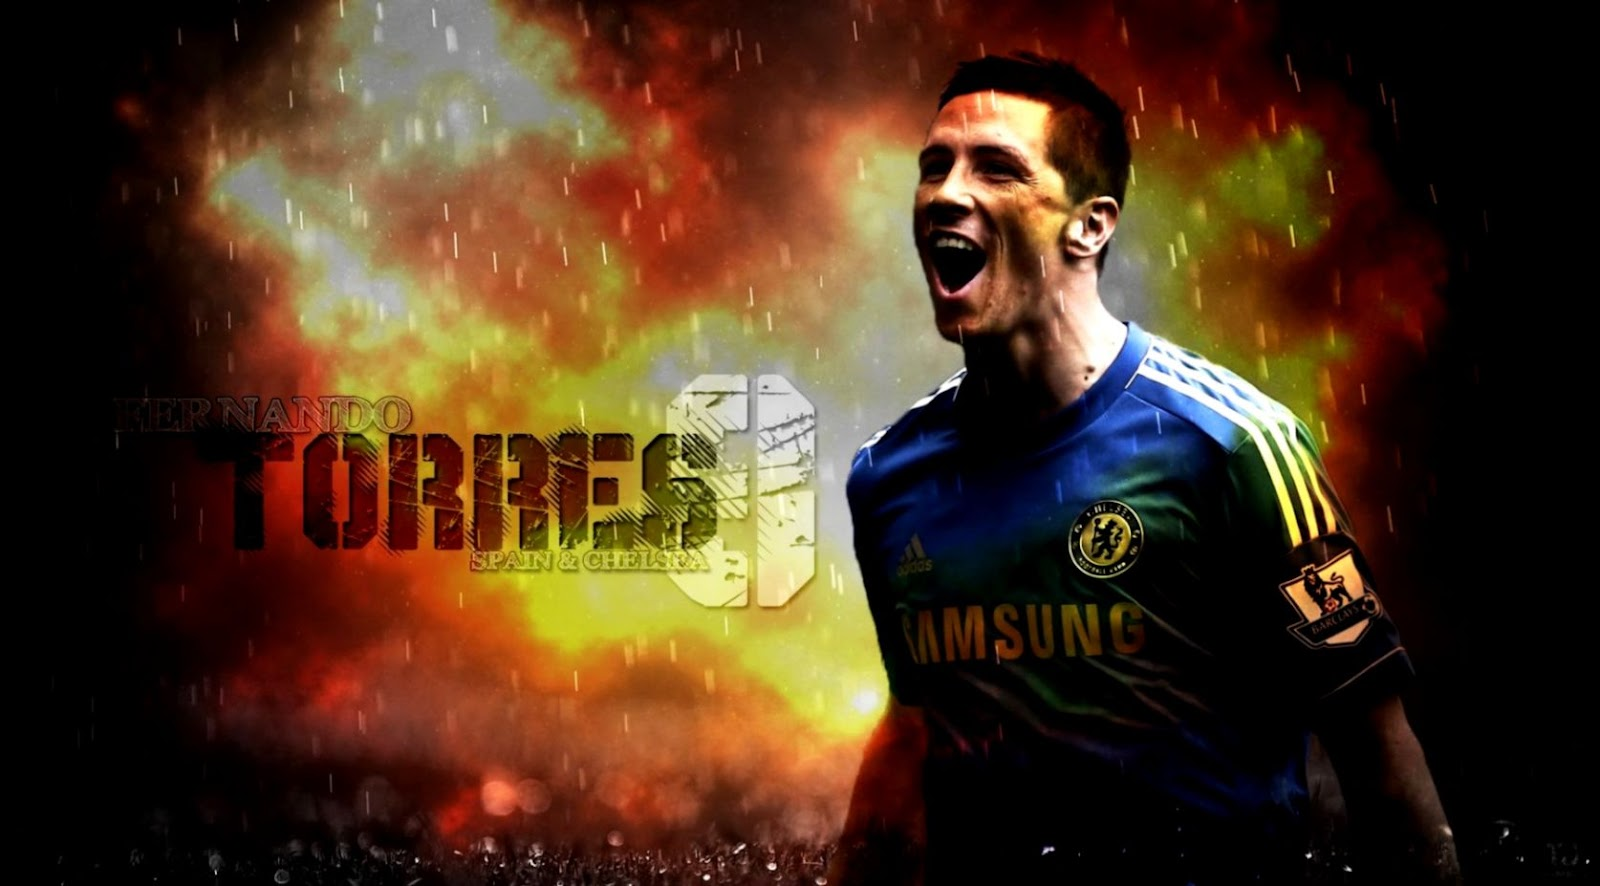 Fernando Torres HD Wallpapers